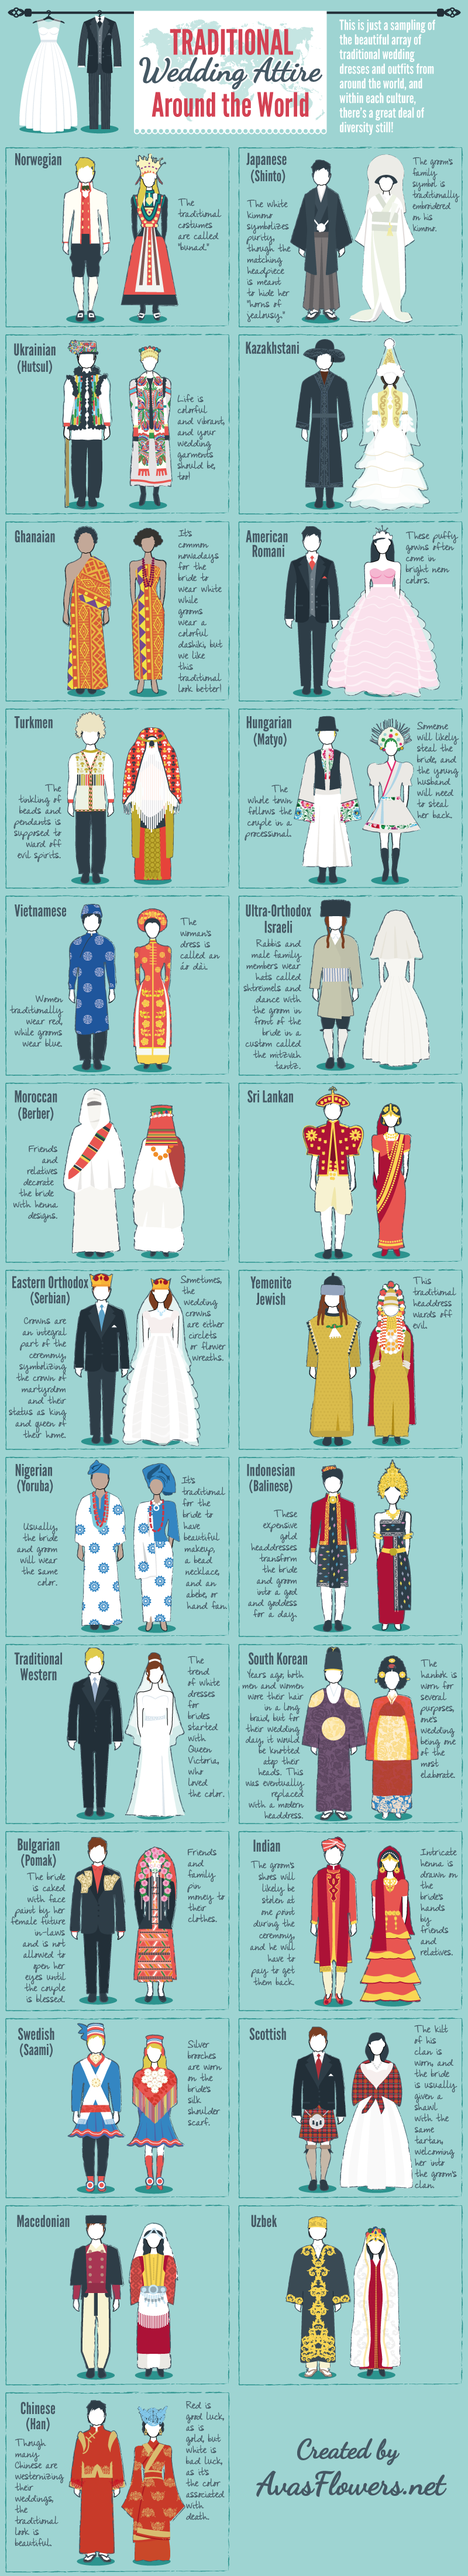 Wedding Attires: Celebrating Symbols of Tradition and Love - Infographic